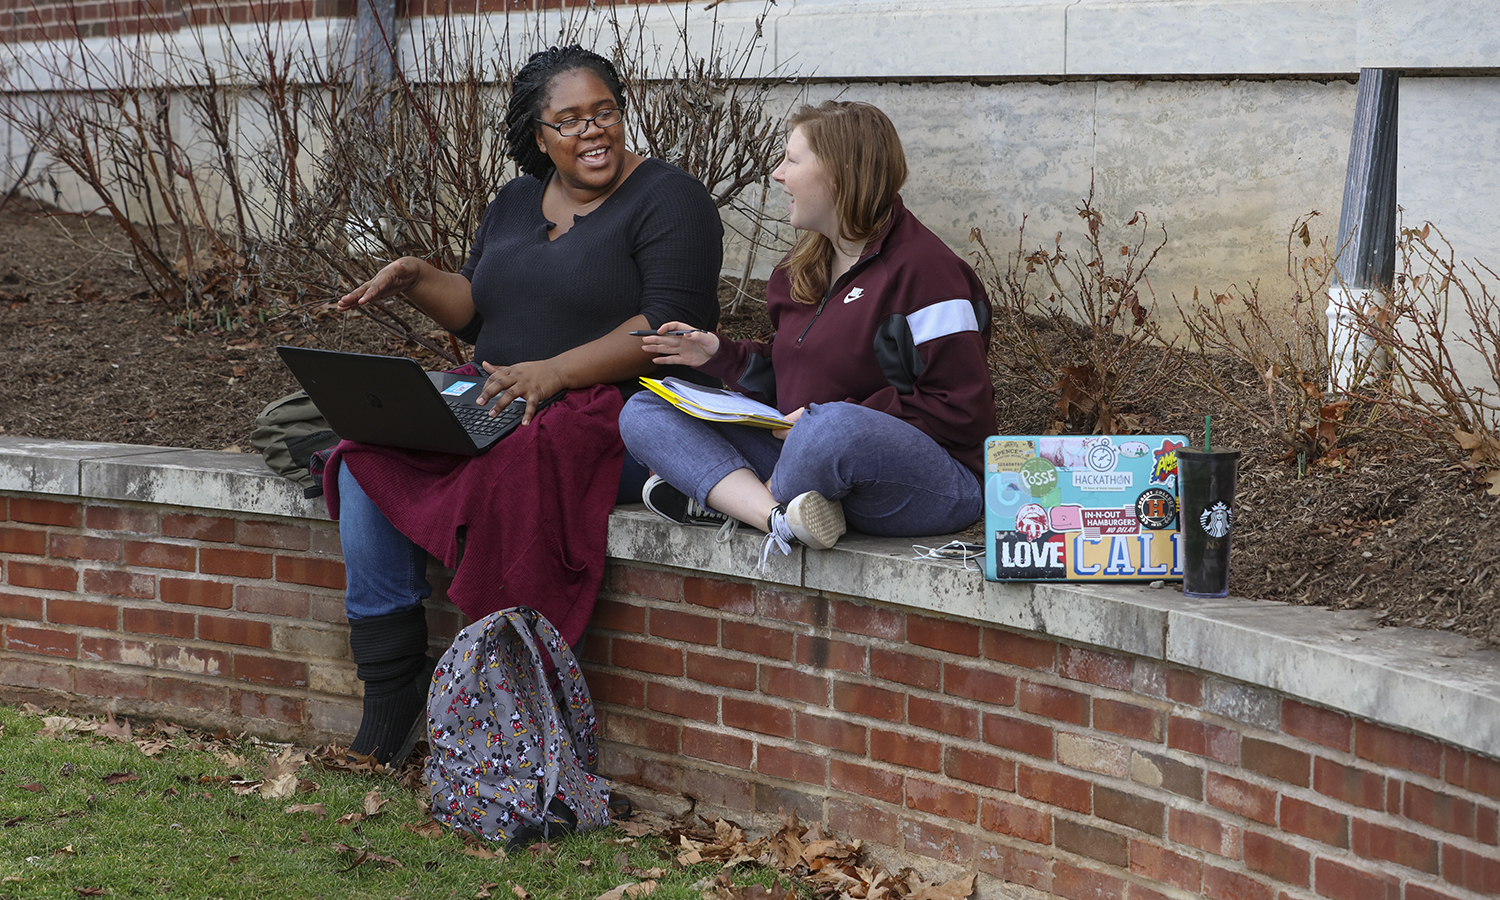 Whitney Campbell '18 and Saoirse Scott '19 talk while working outside of Gulick Hall on Thursday afternoon.